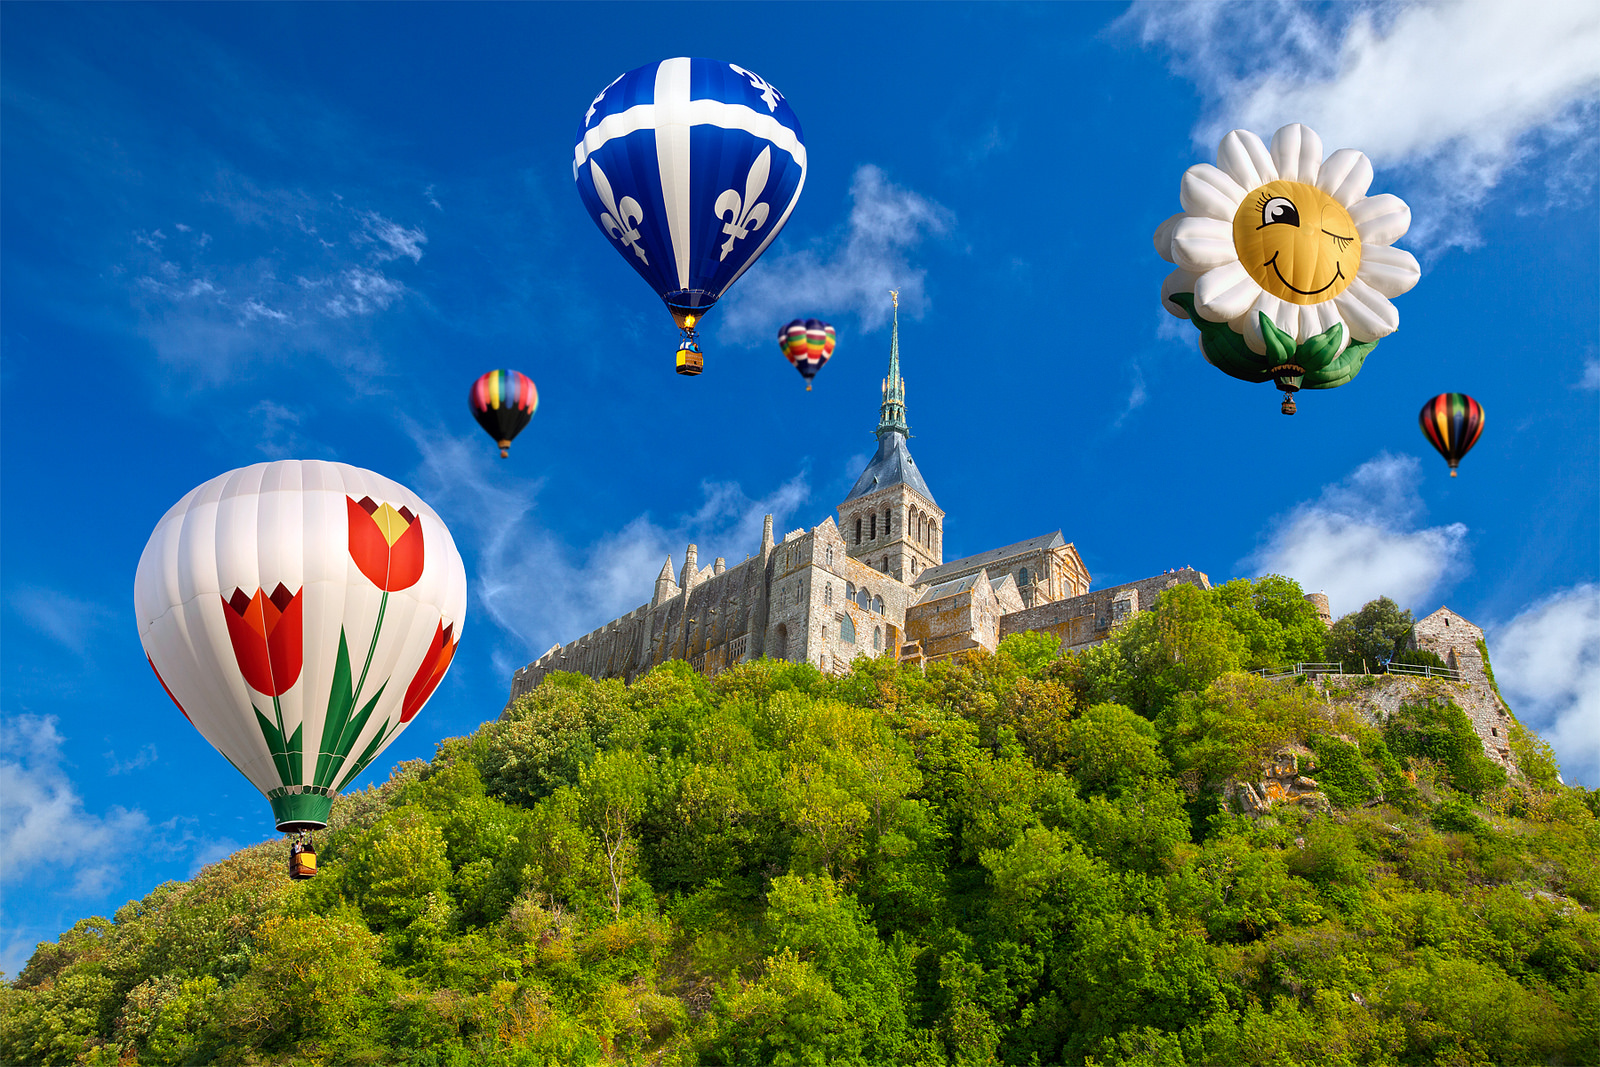 """Hot Air Balloons - Mont Saint-Michel"" by Nicolas Raymond via Flickr Creative Commons"